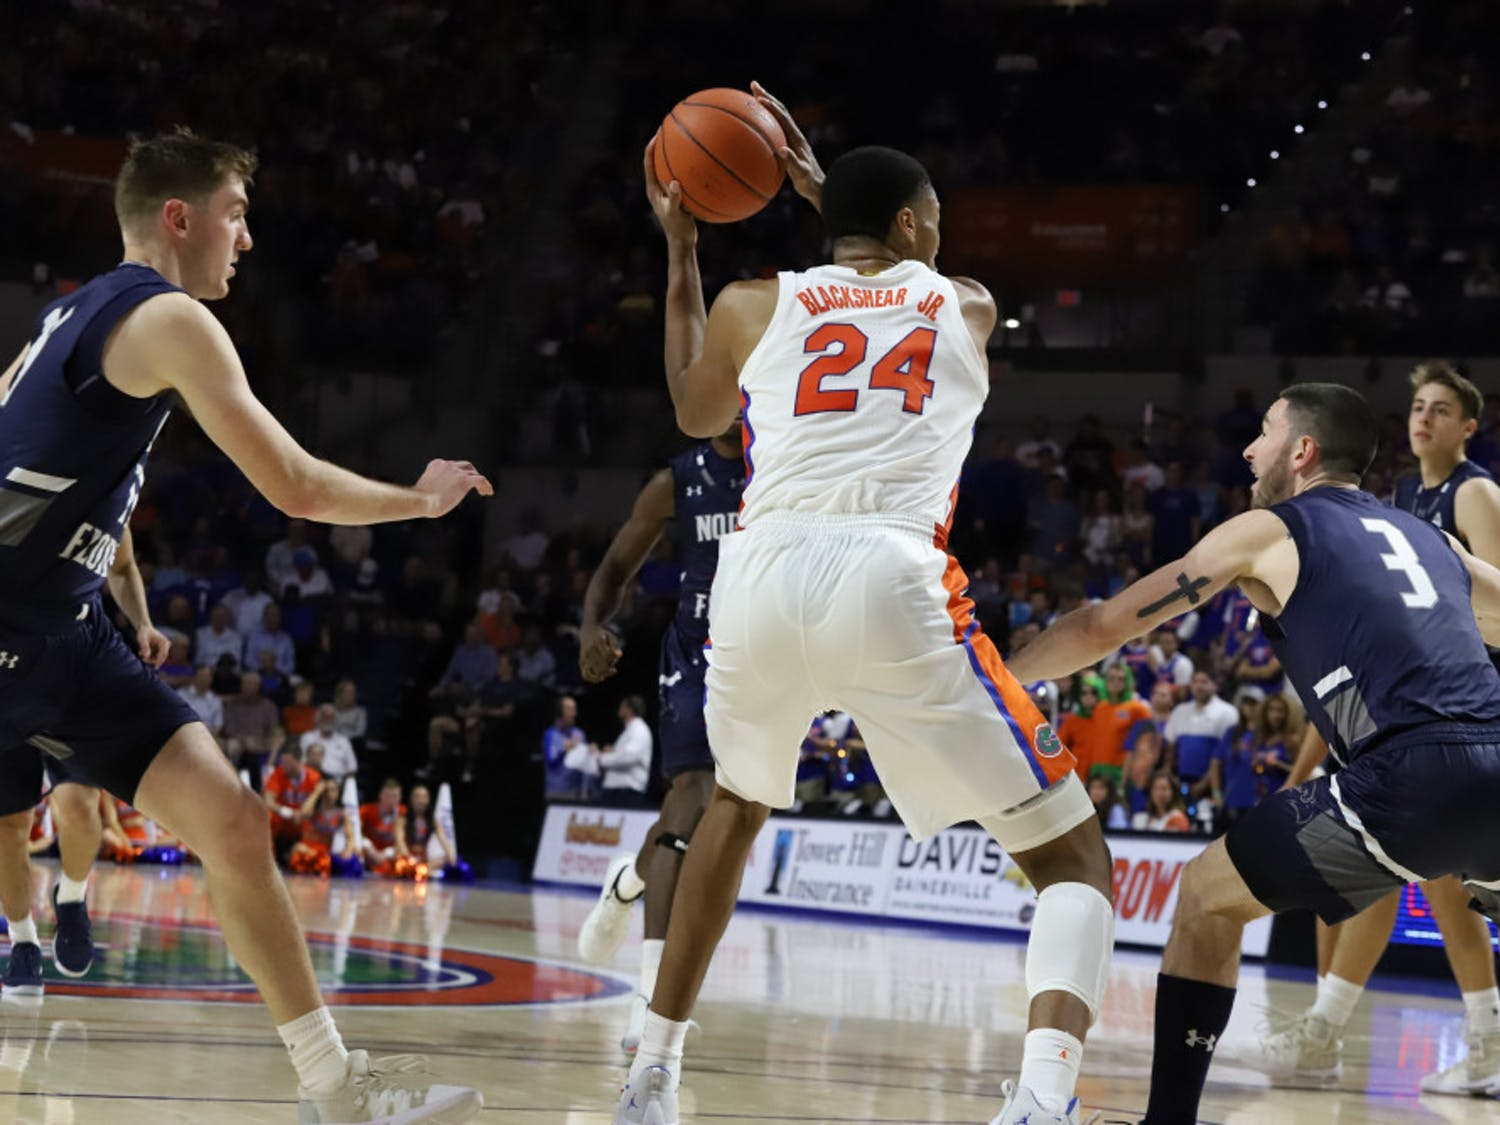 Forward Kerry Blackshear Jr. logged 20 points and 10 rebounds in the UF win.